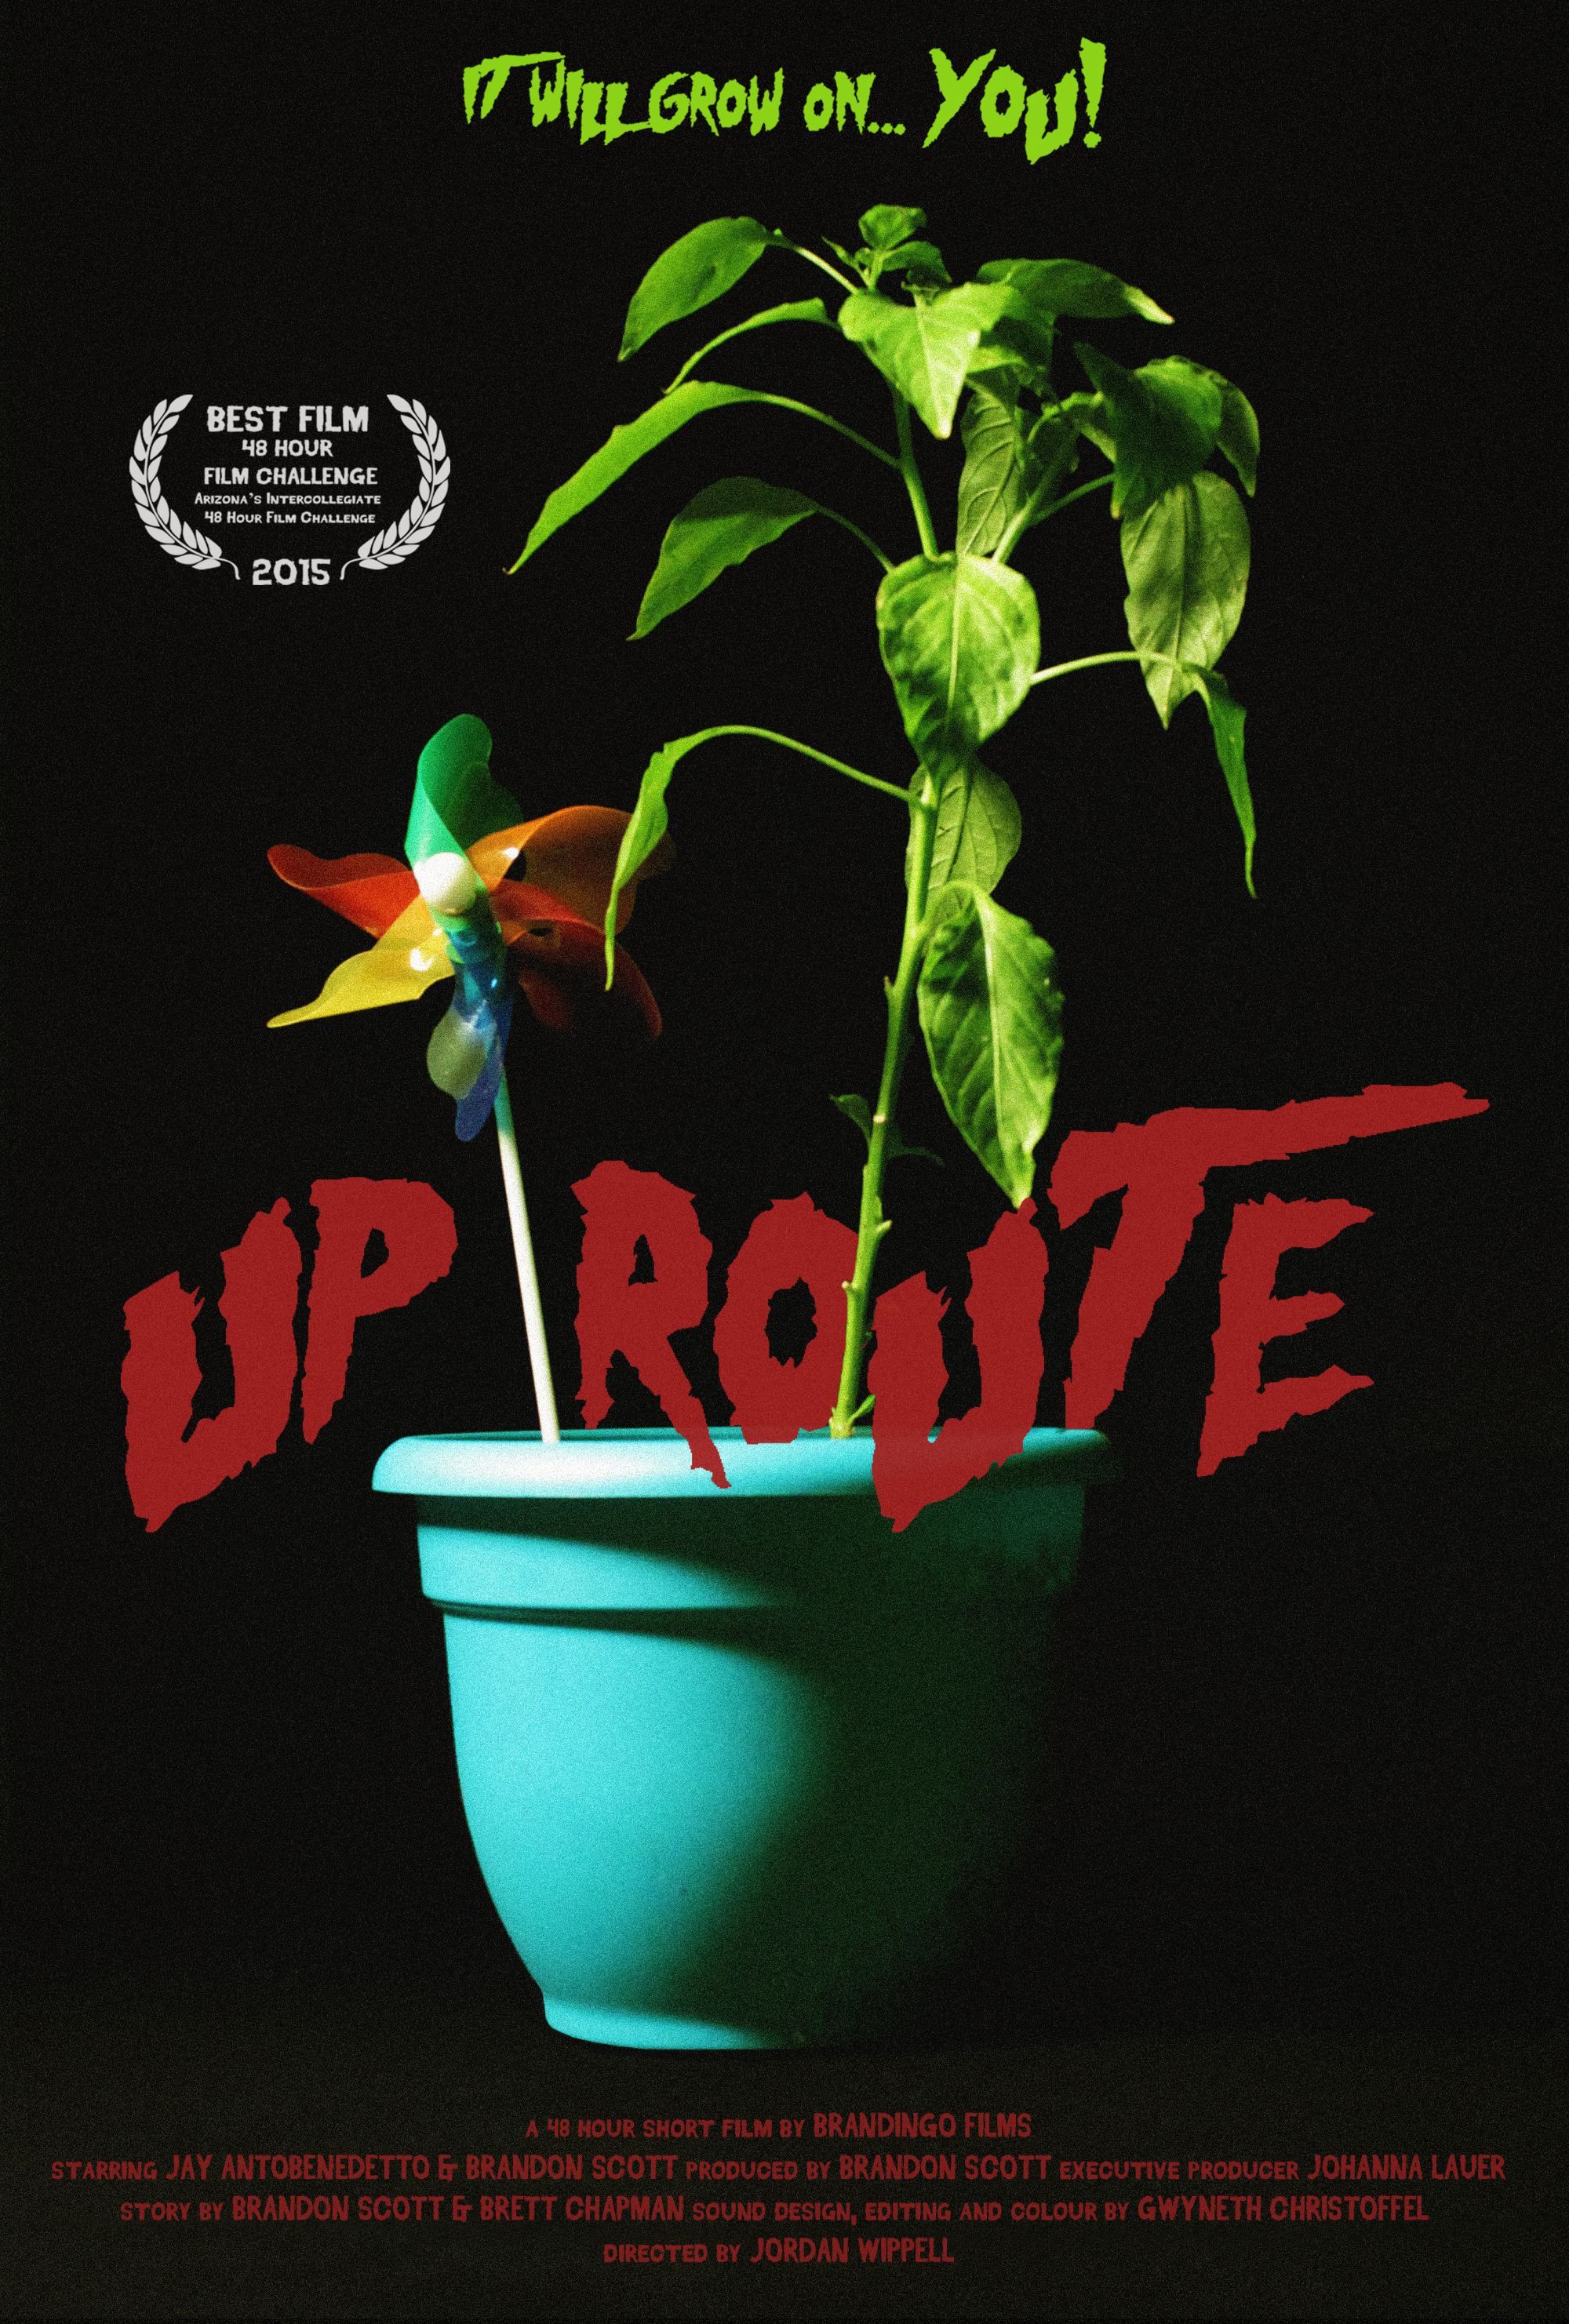 up route (2015)